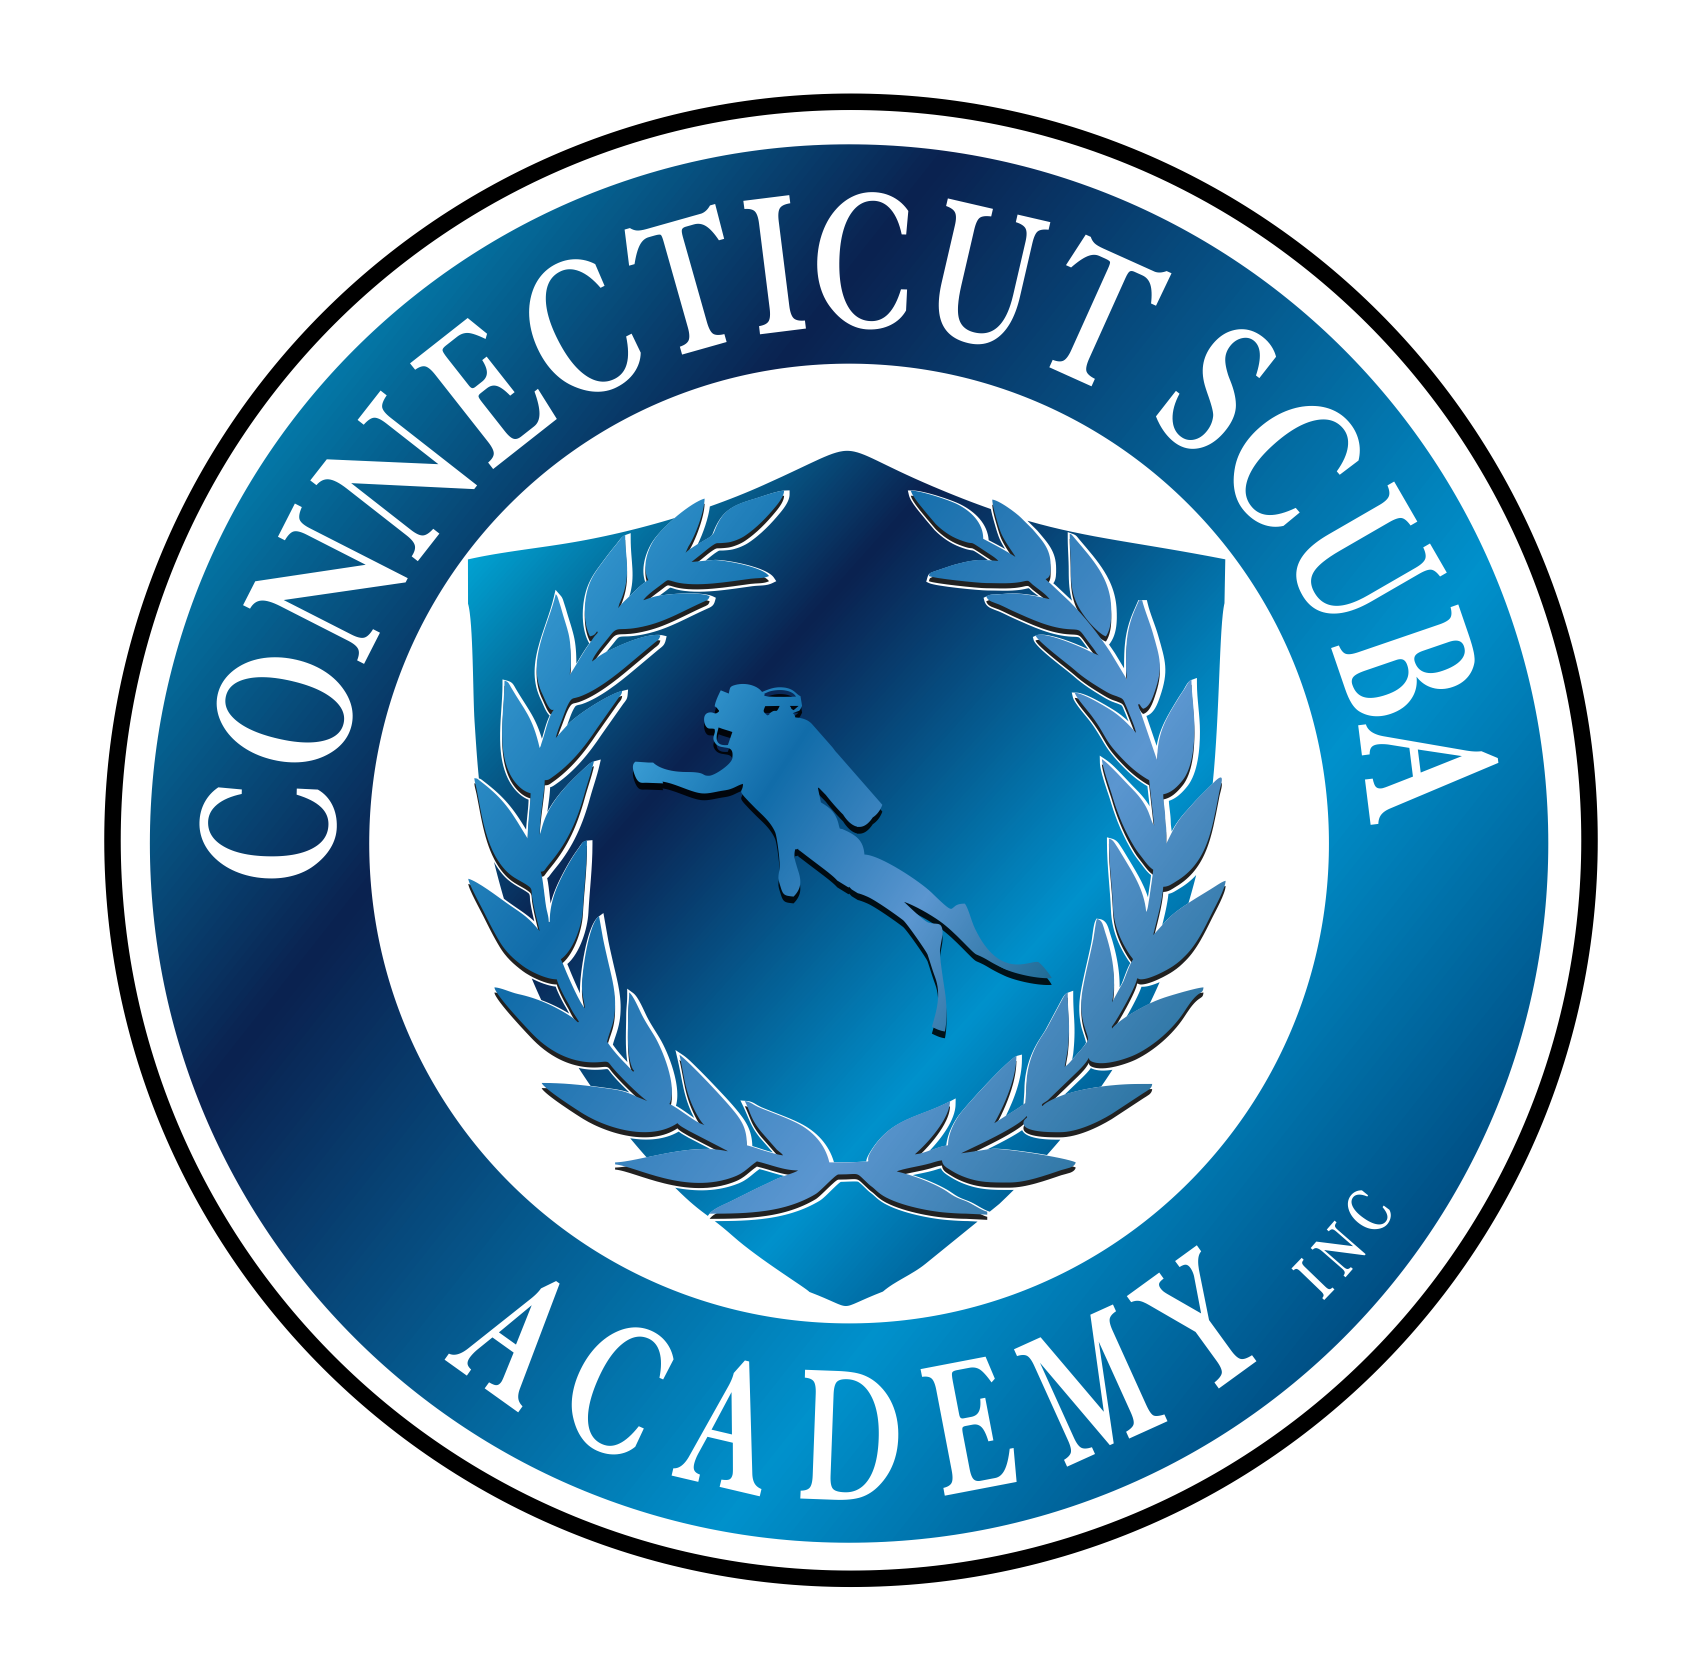 Connecticut Scuba Academy